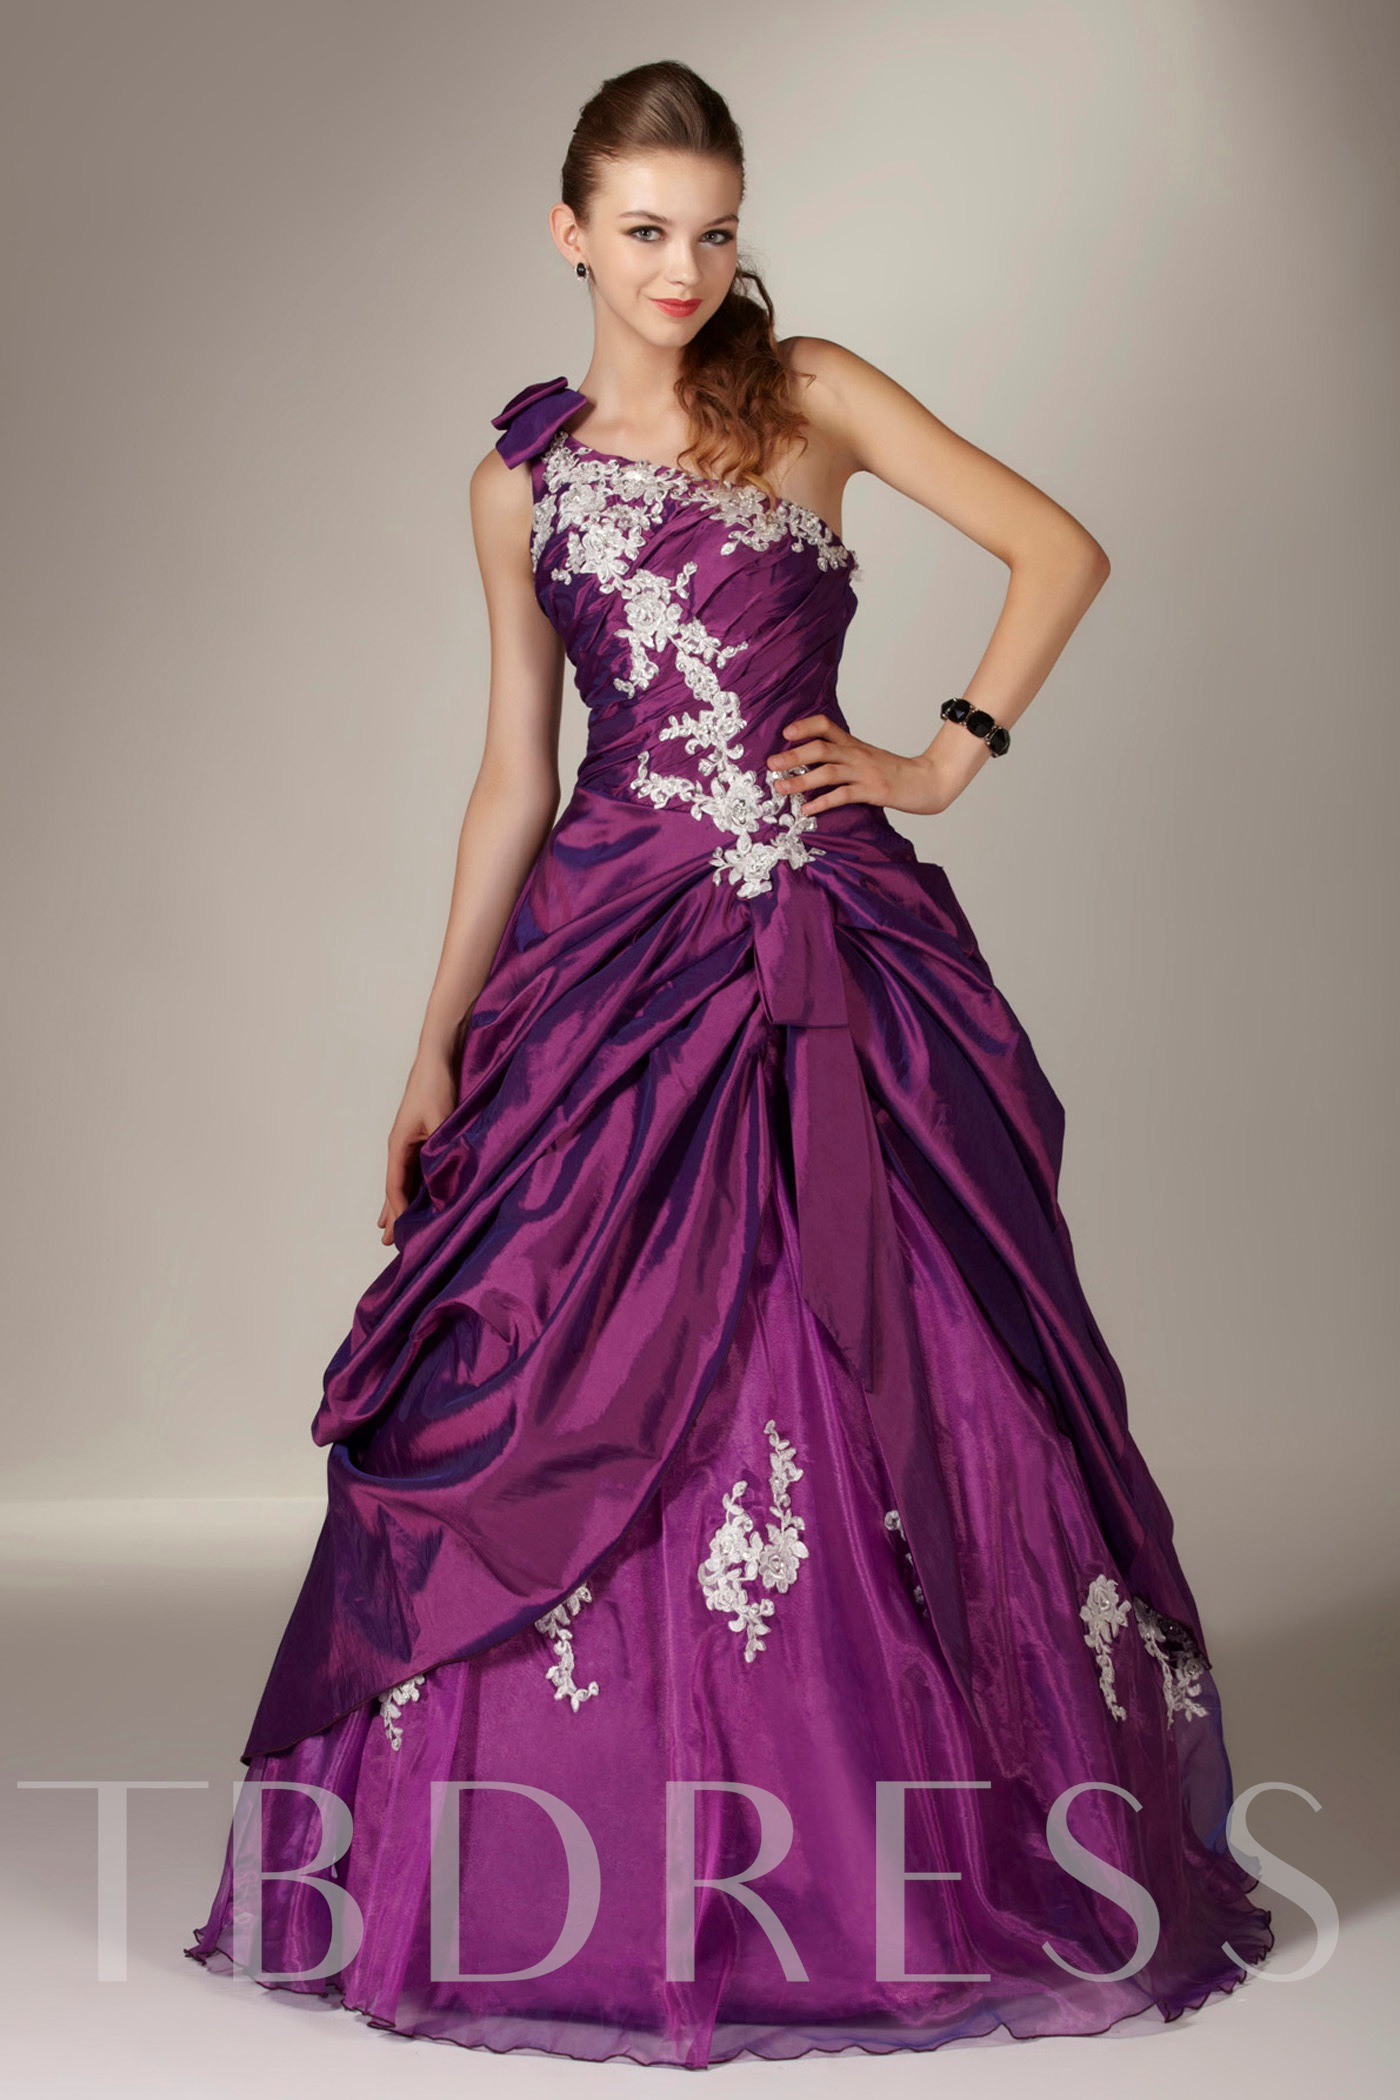 Image of A-Line Floor-Length One Shoulder Quinceanera Dress